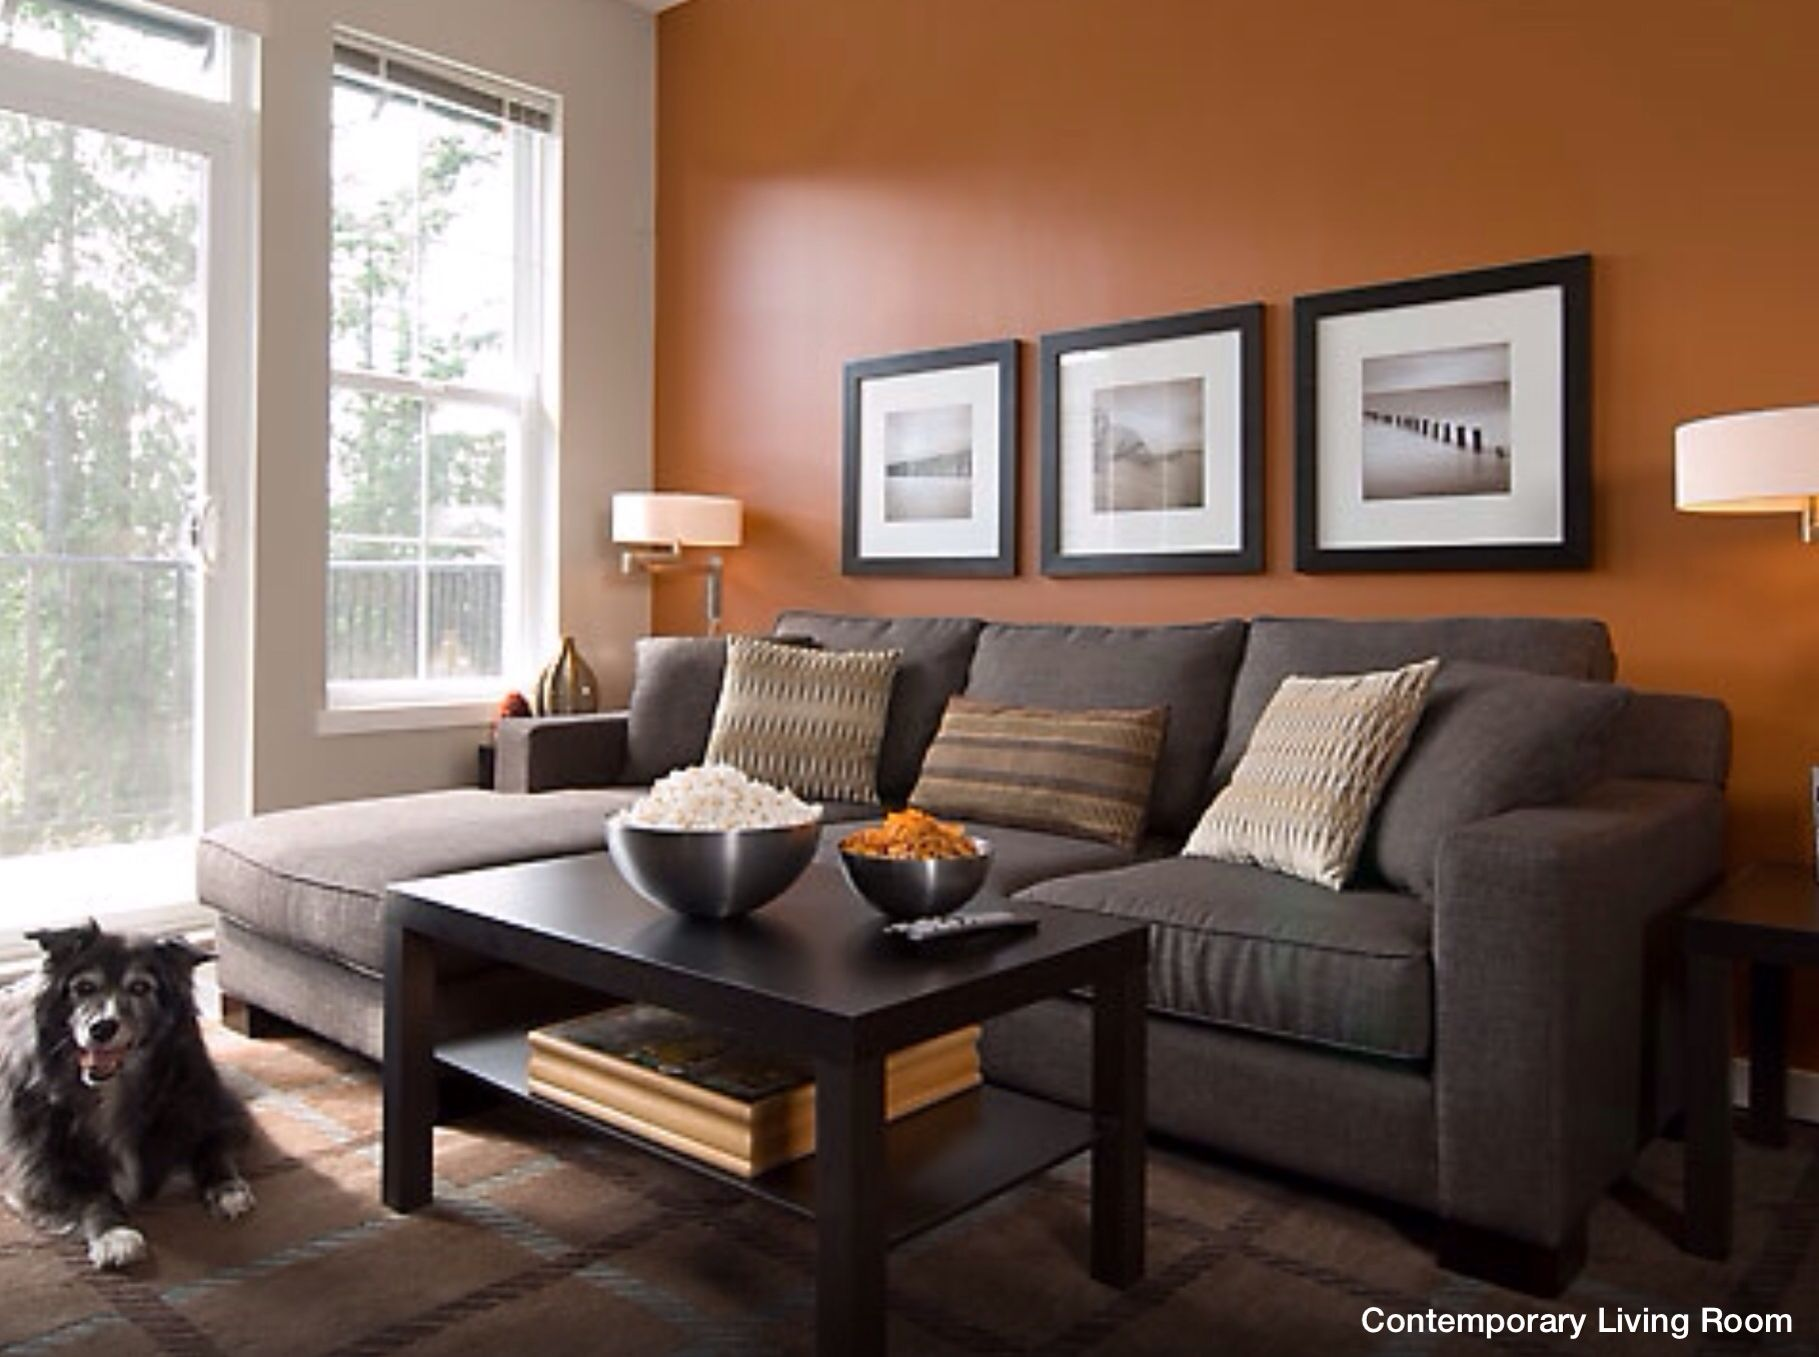 Burnt Orange And Brown Living Room Property wall accent color | wall colors that work | pinterest | wall